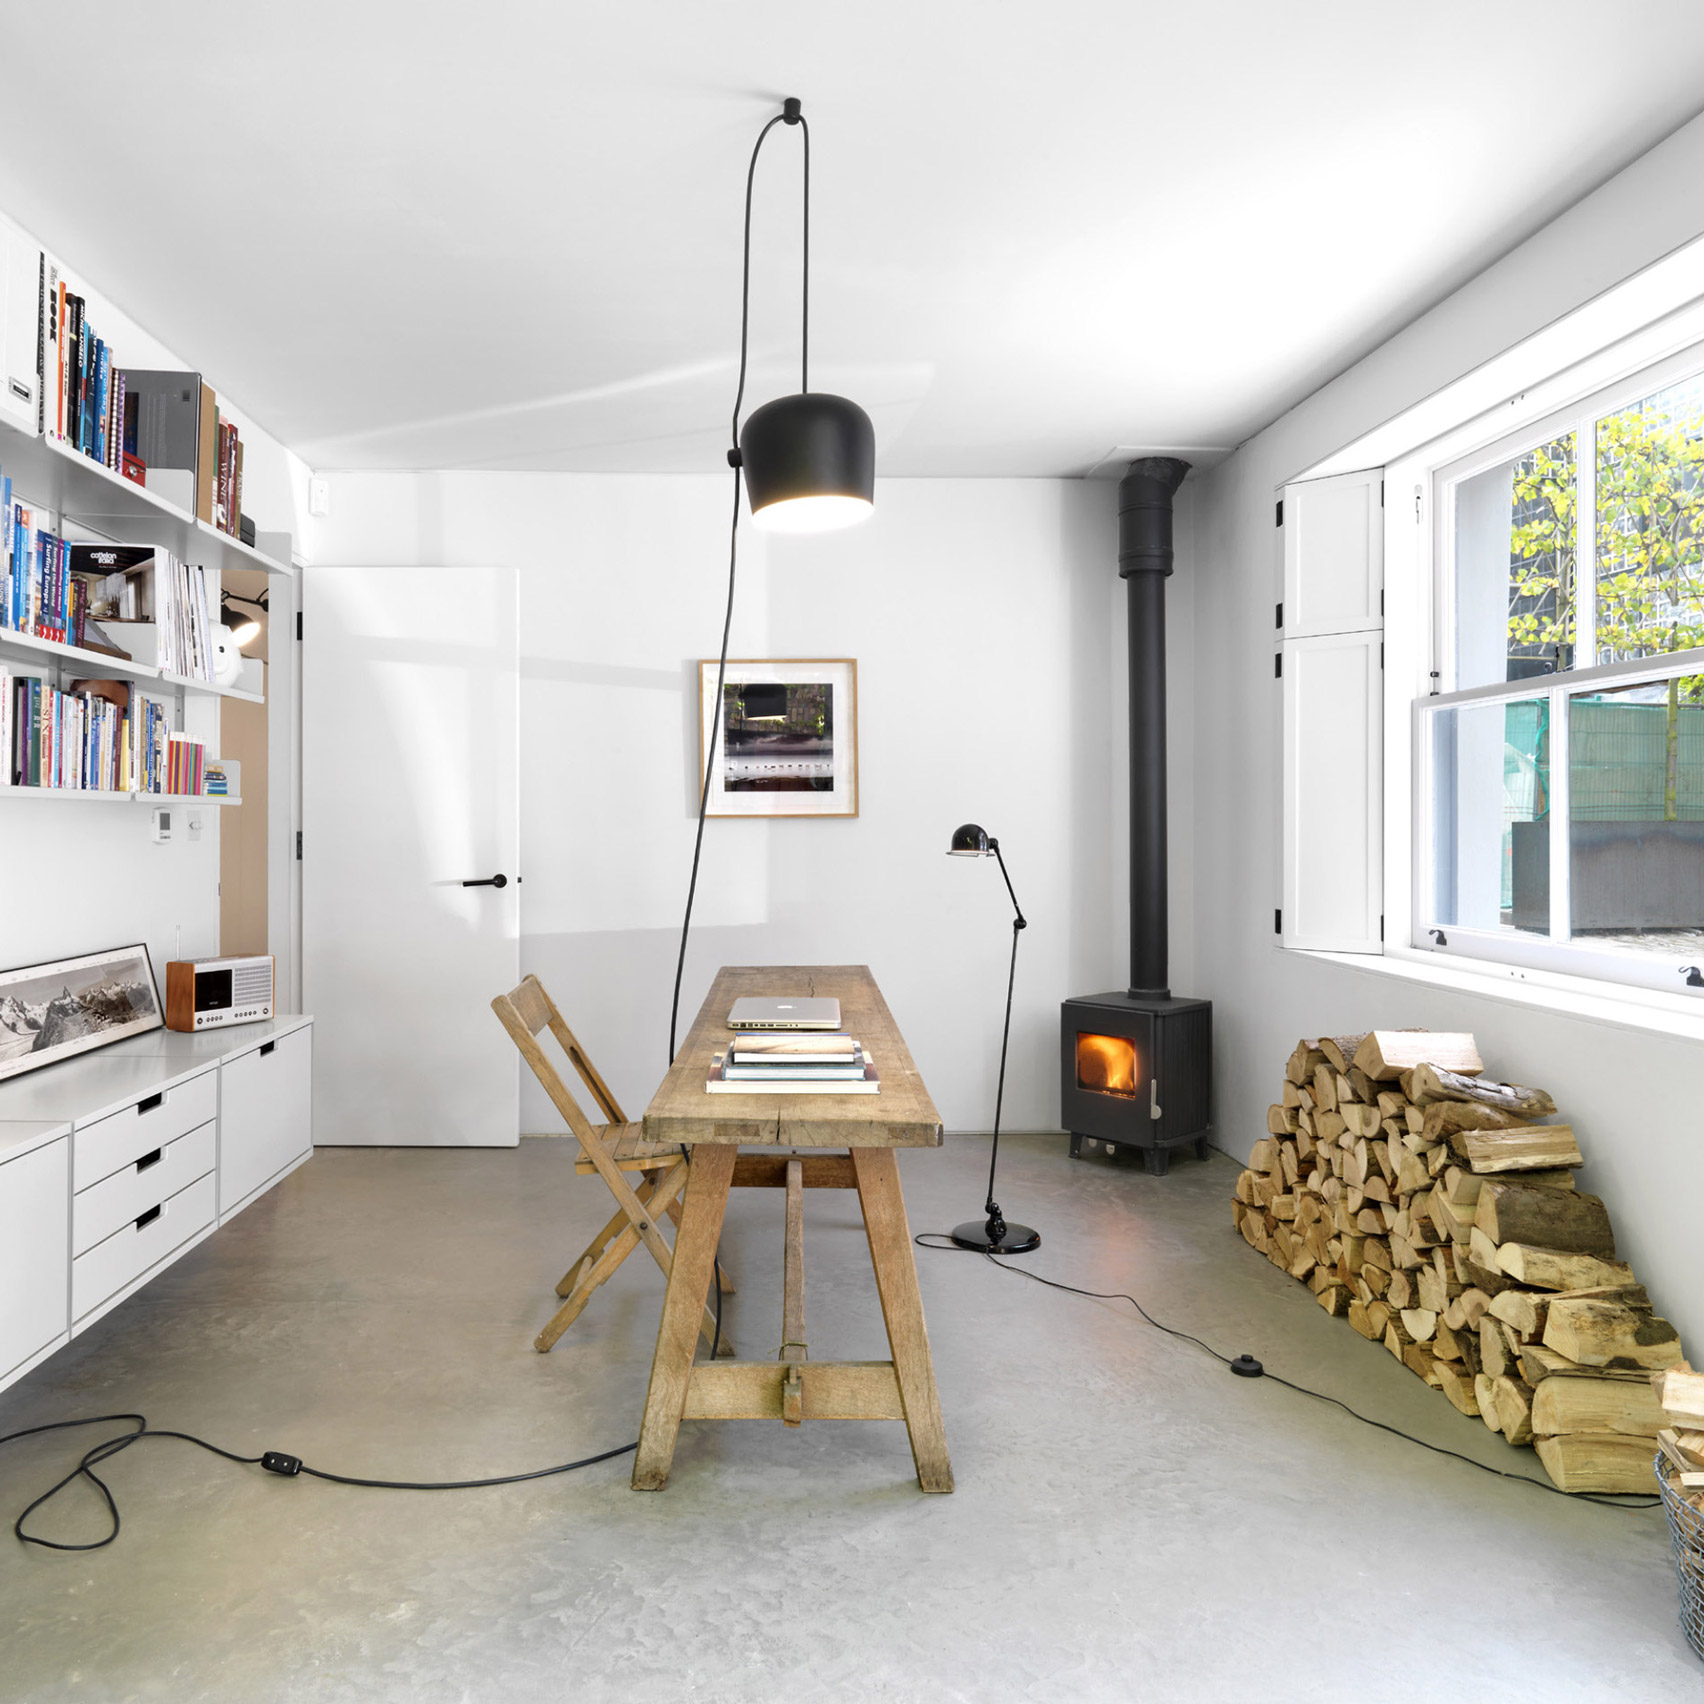 10 rustic home interiors from Dezeen's Pinterest boards that go back to basics